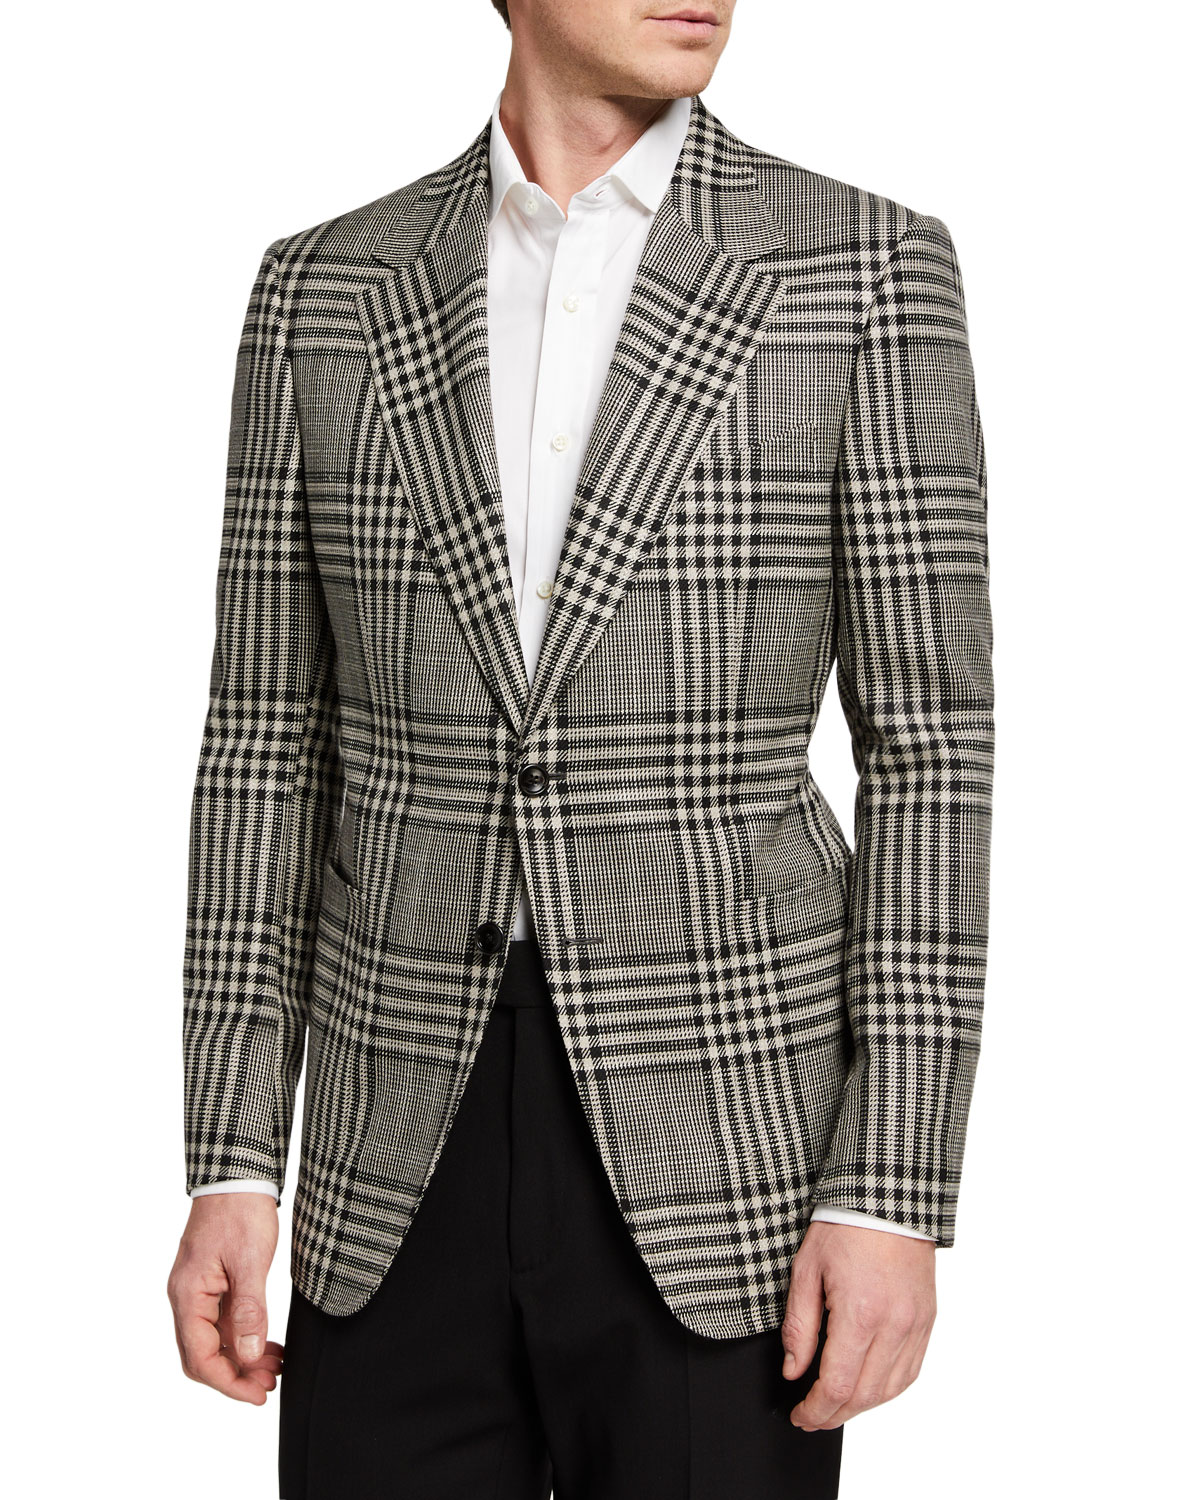 TOM FORD Men's Shelton Check Two-Button Jacket